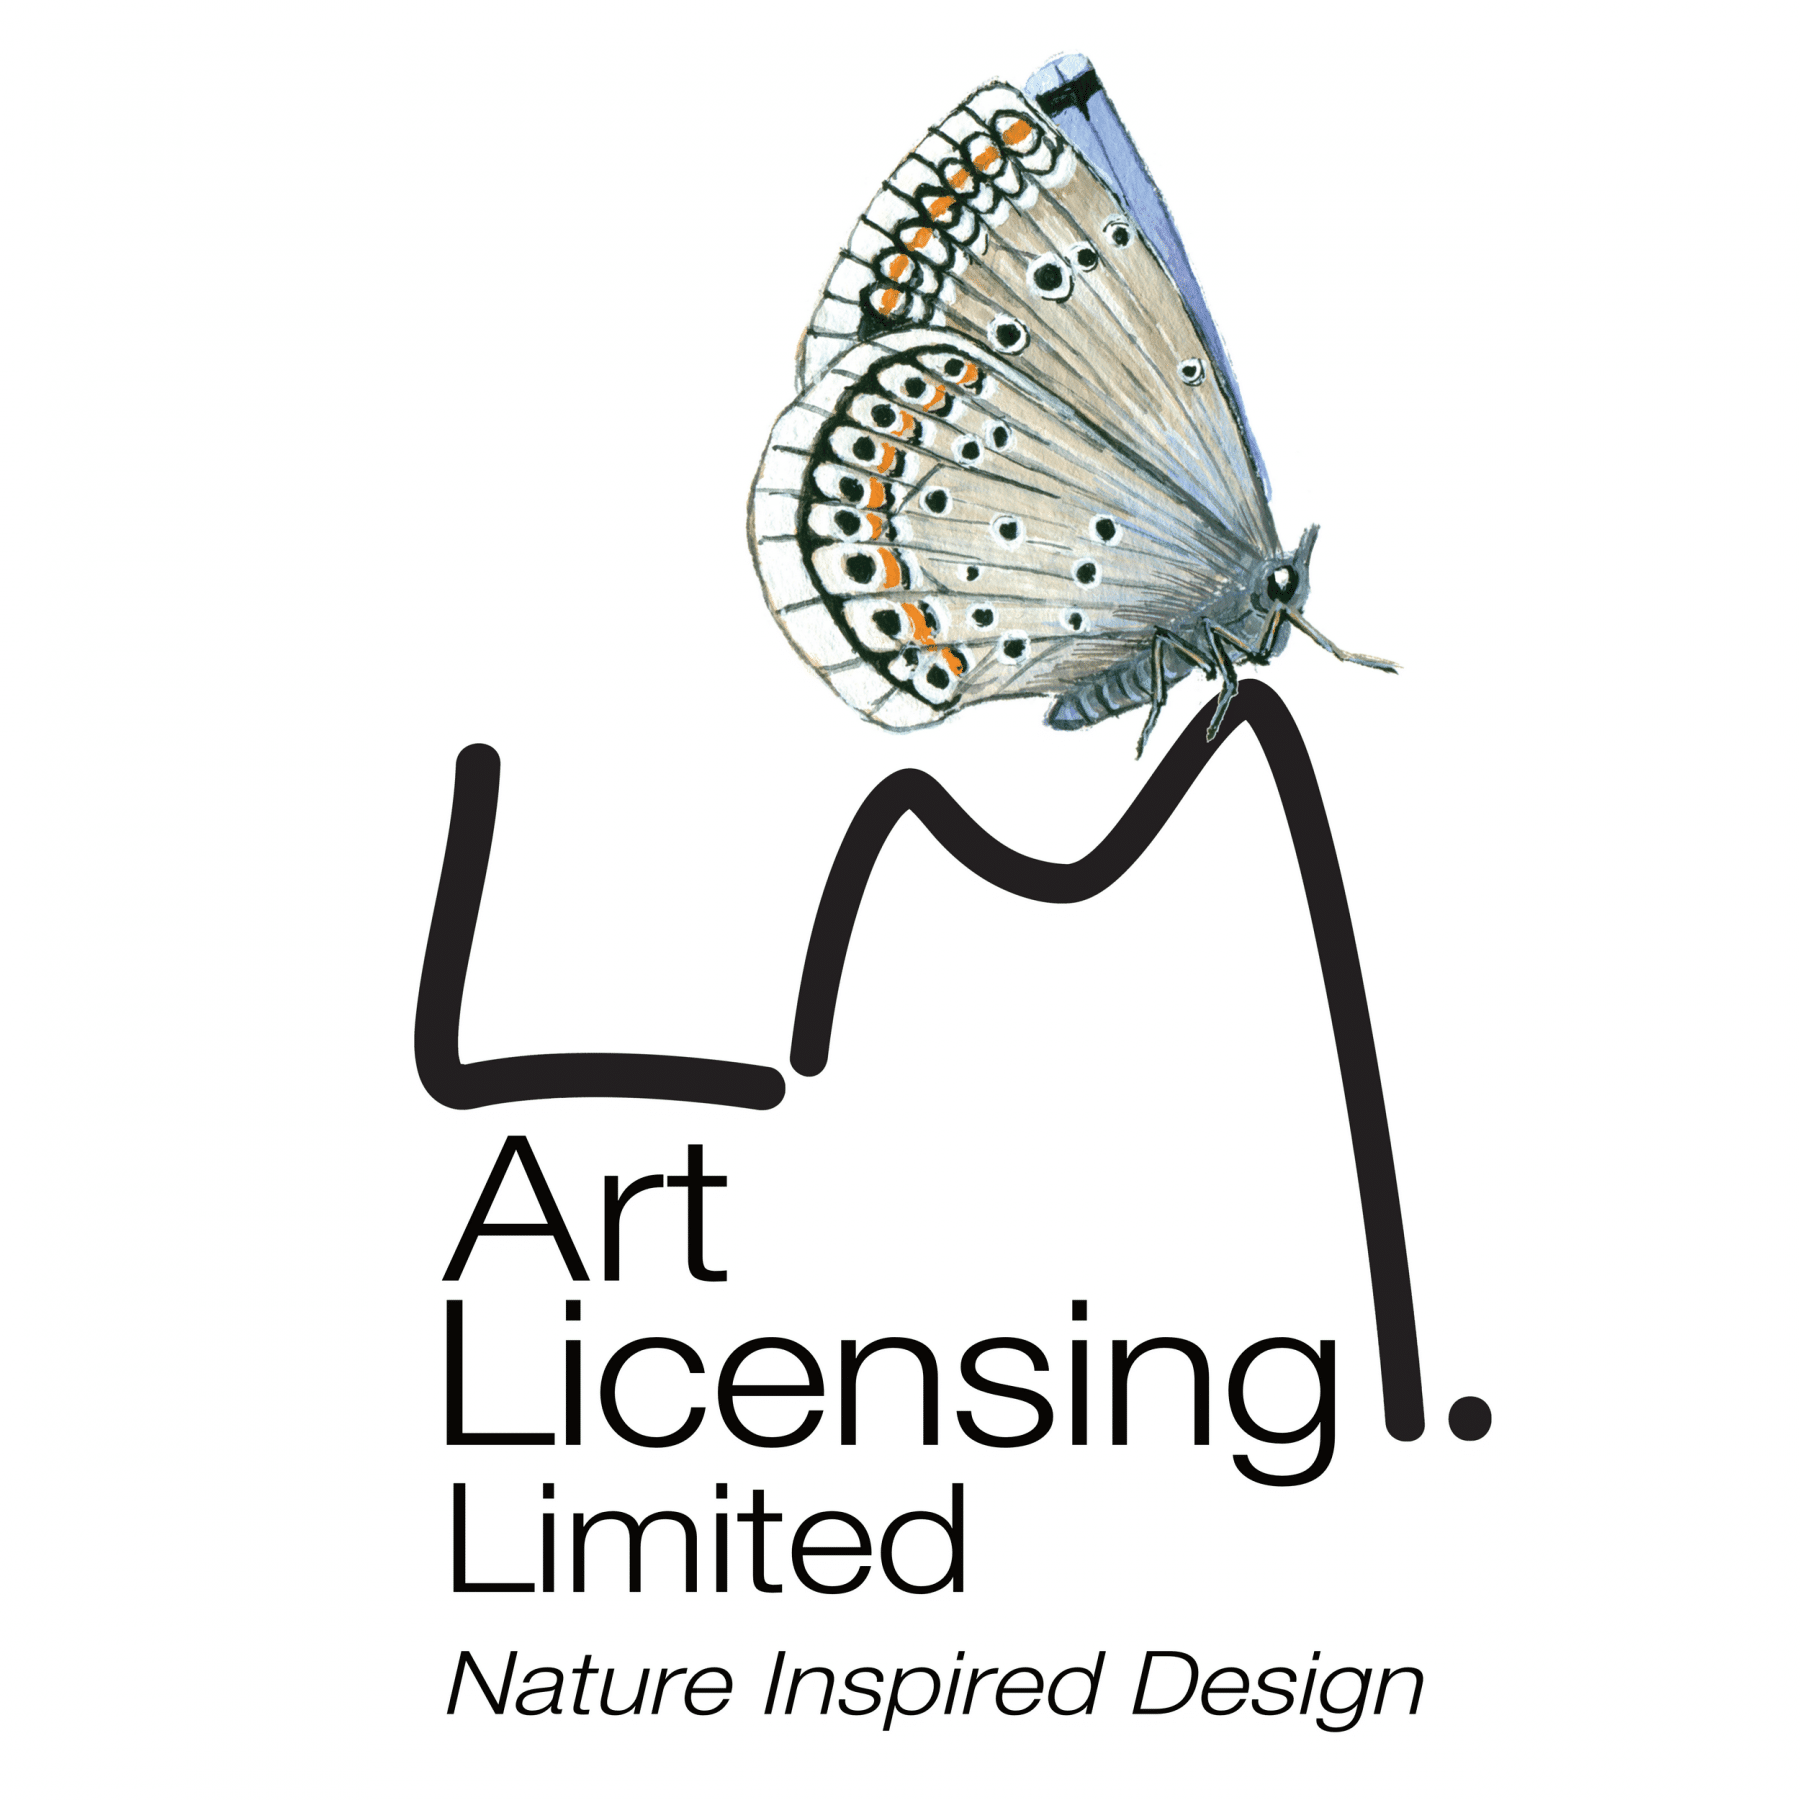 LM Art Licensing Limited